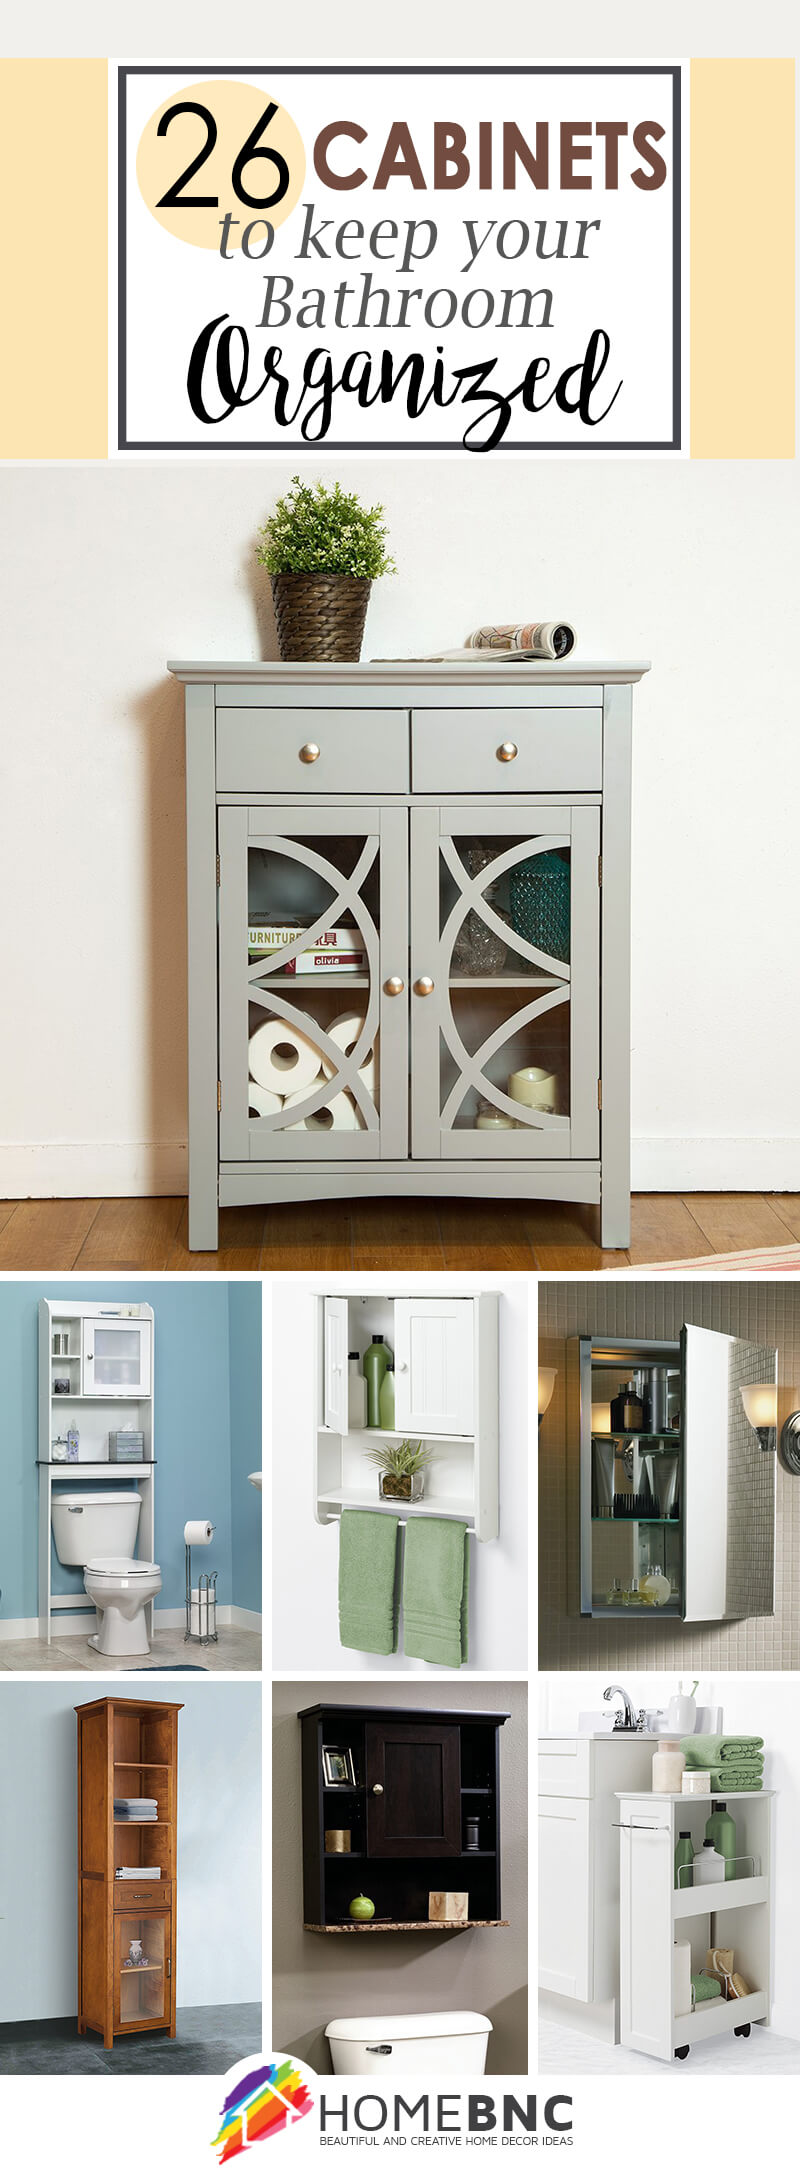 Cabinet for bathroom storage - Bathroom Storage Cabinet Ideas